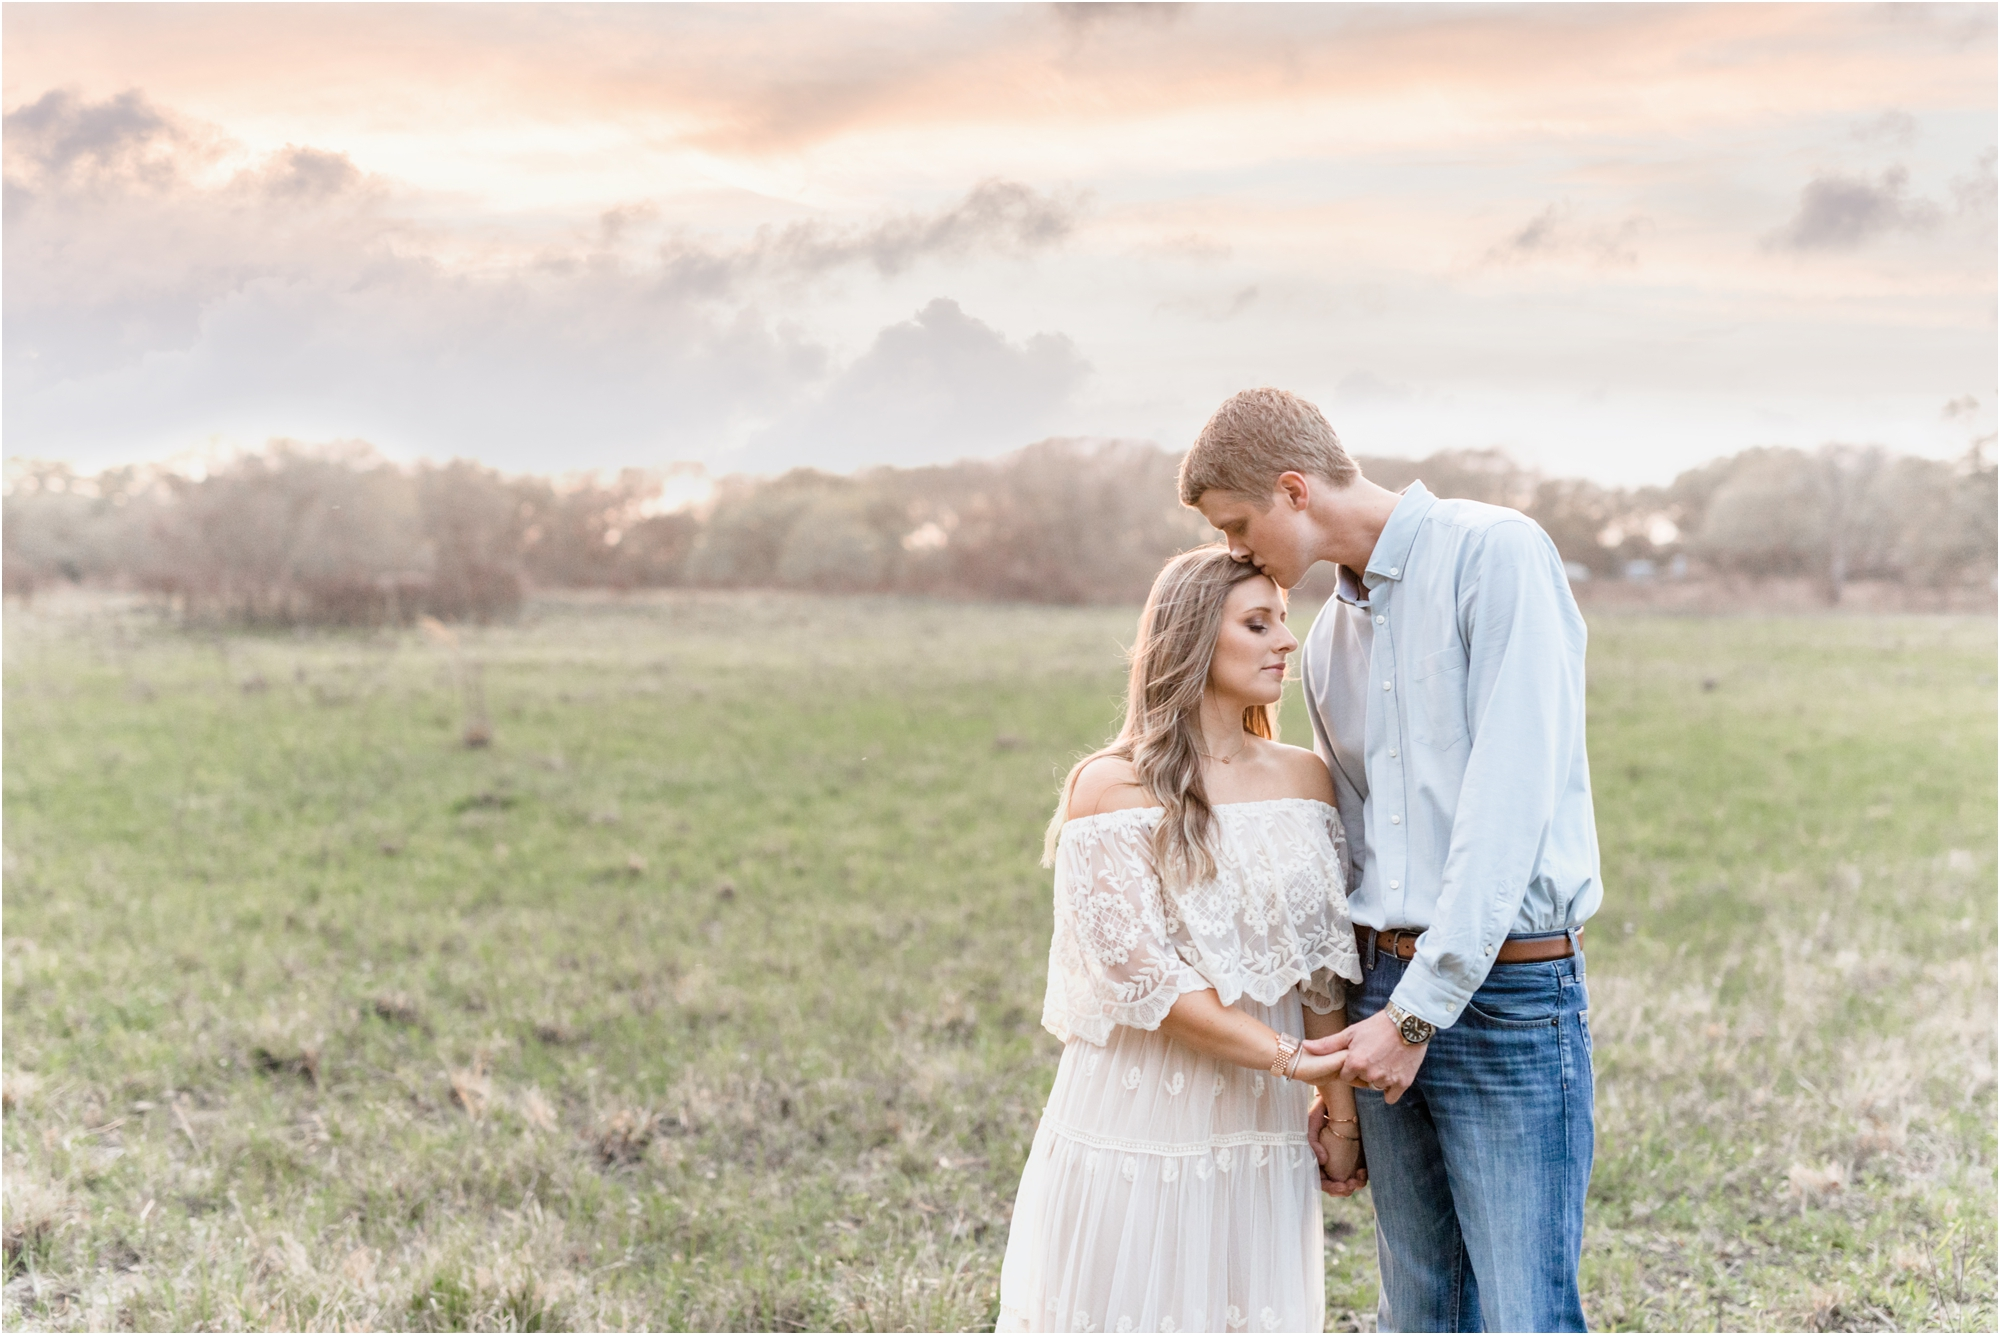 Husband kissing wife's forehead during sunset session in beautiful field. Photo by Lifetime of Clicks Photography.